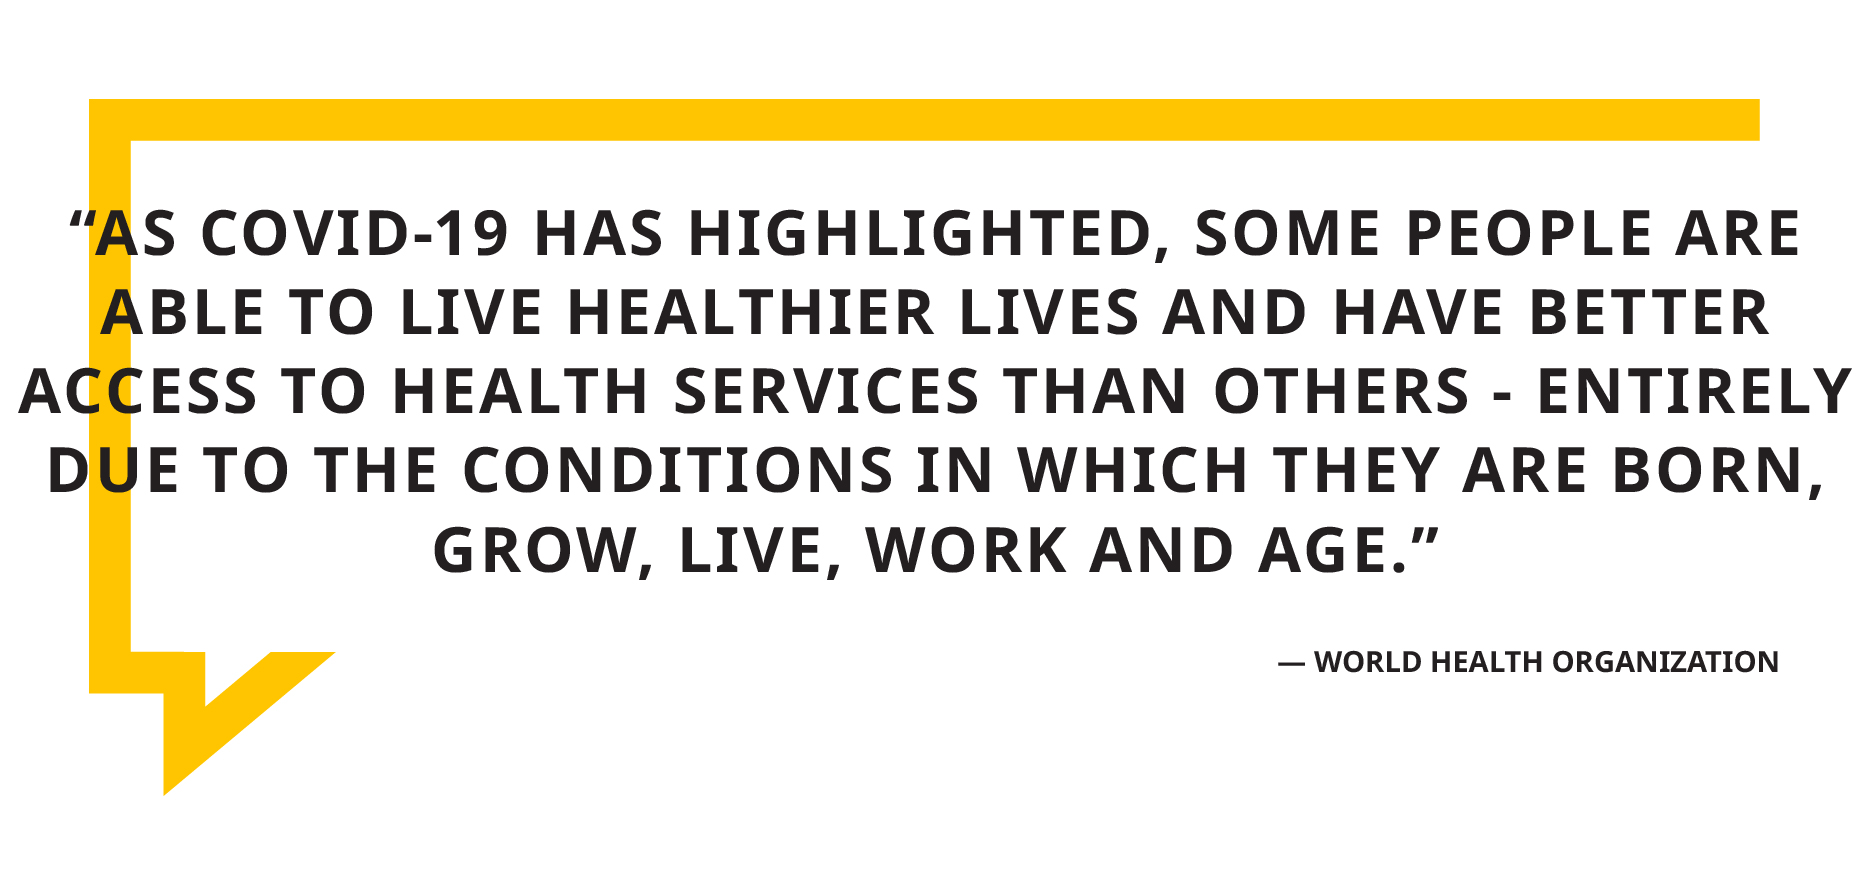 """Graphic with quote by World Health Organization, """"As COVID-19 has highlighted, some people are able to live healthier lives and have better access to health services than others - entirely due to the conditions in which they are born, grow, live, work and age."""""""